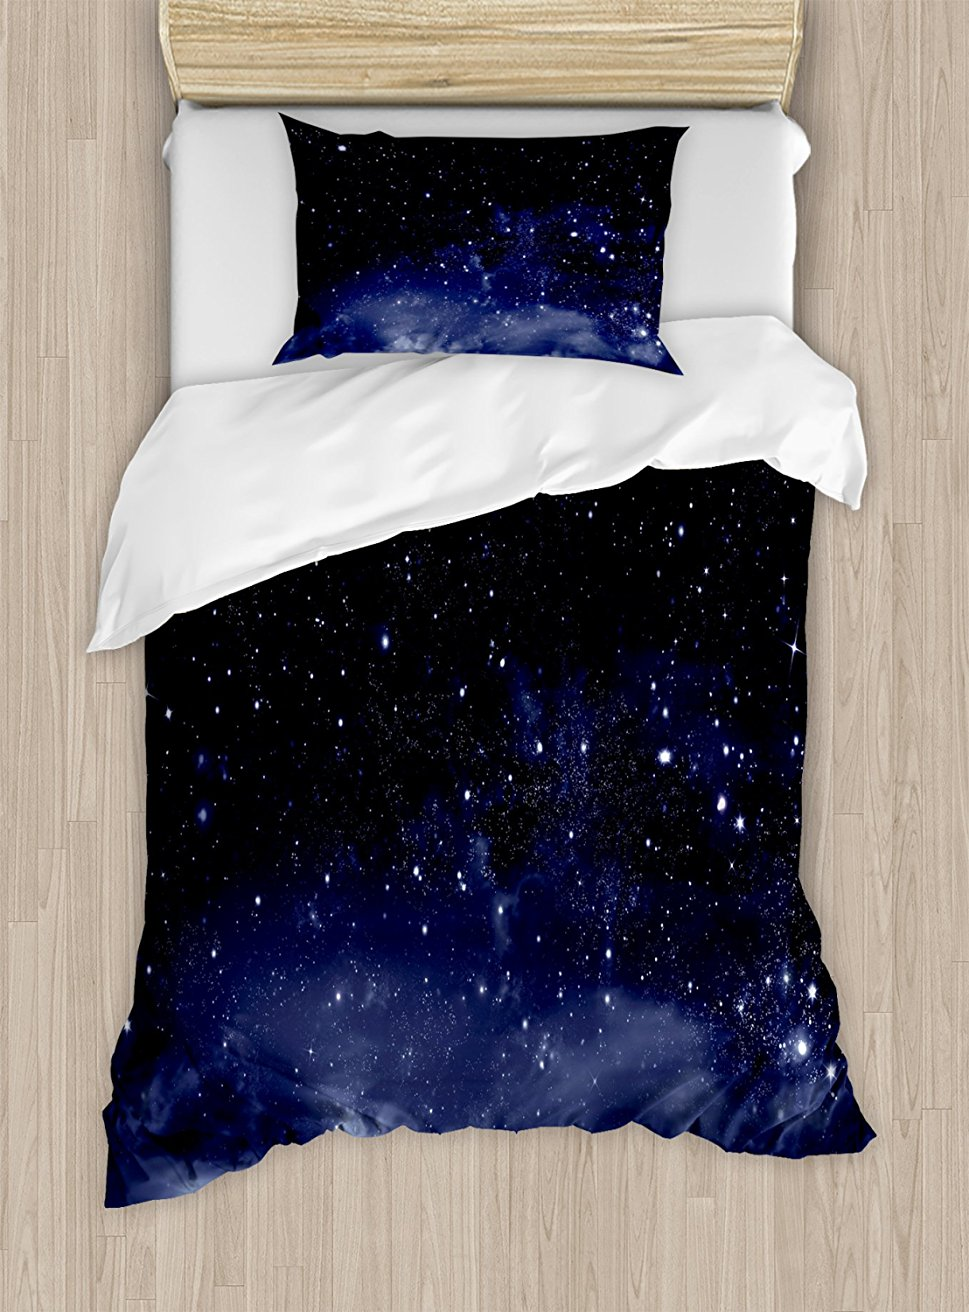 Duvet Cover Set Ethereal View of the Dark Sky Atmosphere Nebula Fantasy Cosmic Universe Theme, 4 Piece Bedding Set